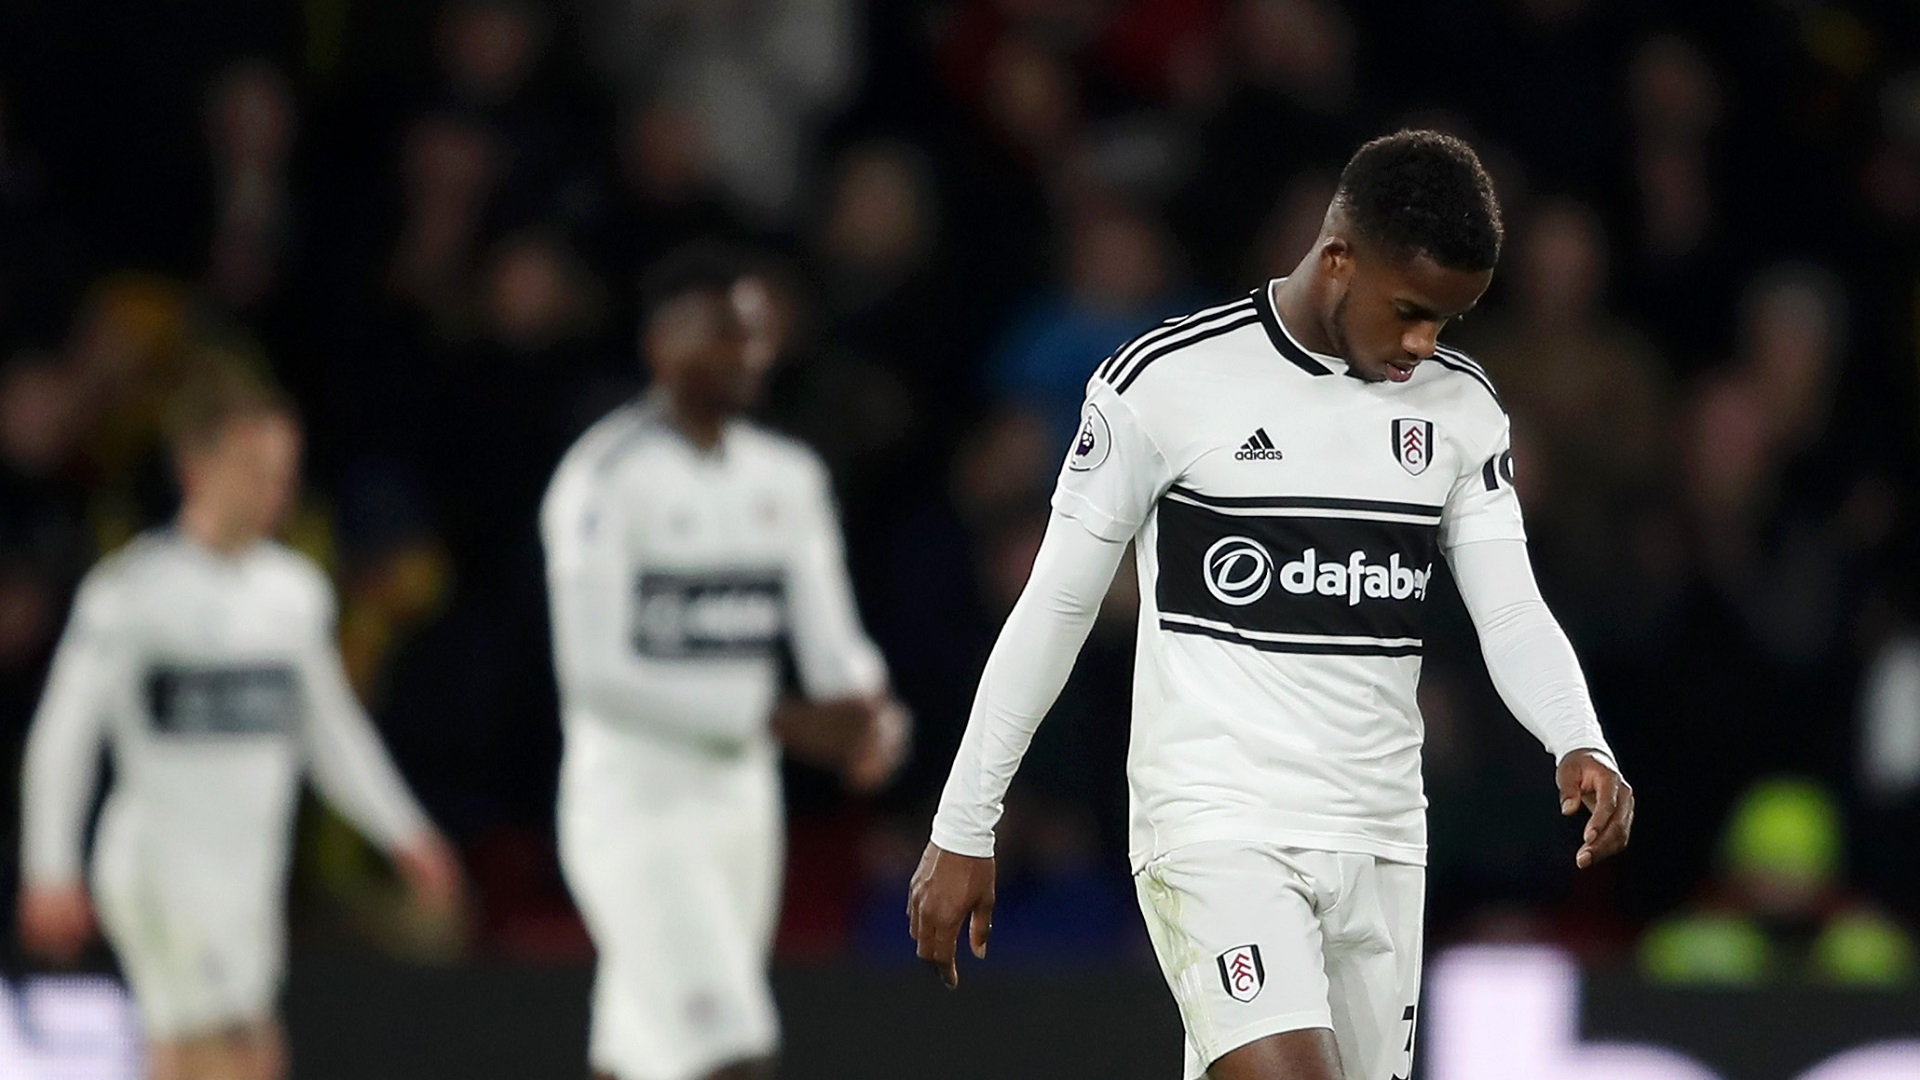 Fulham relegated after defeat at Watford